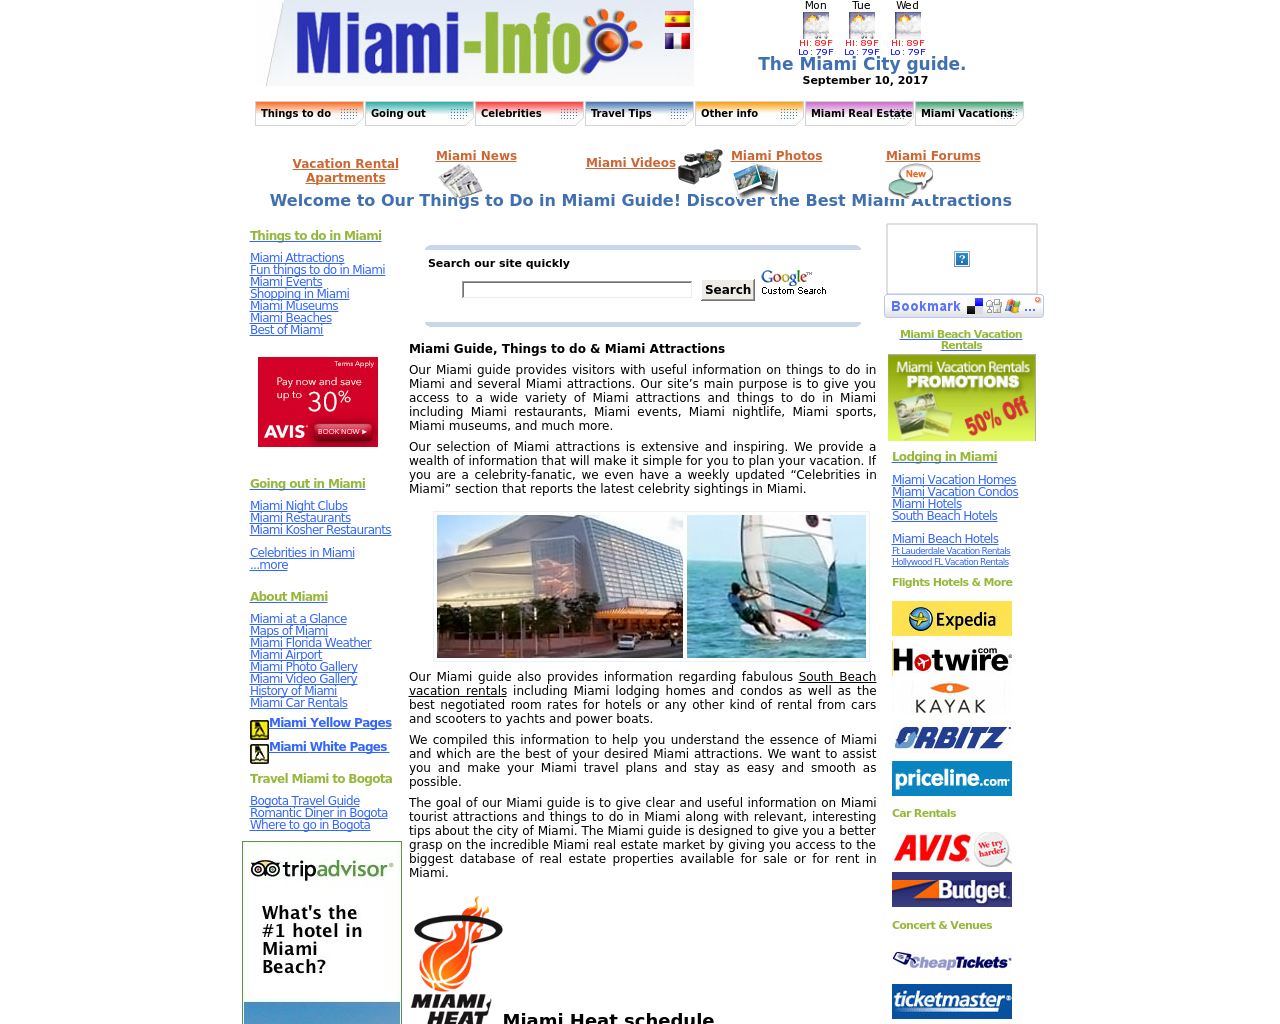 Miami-Info-Advertising-Reviews-Pricing